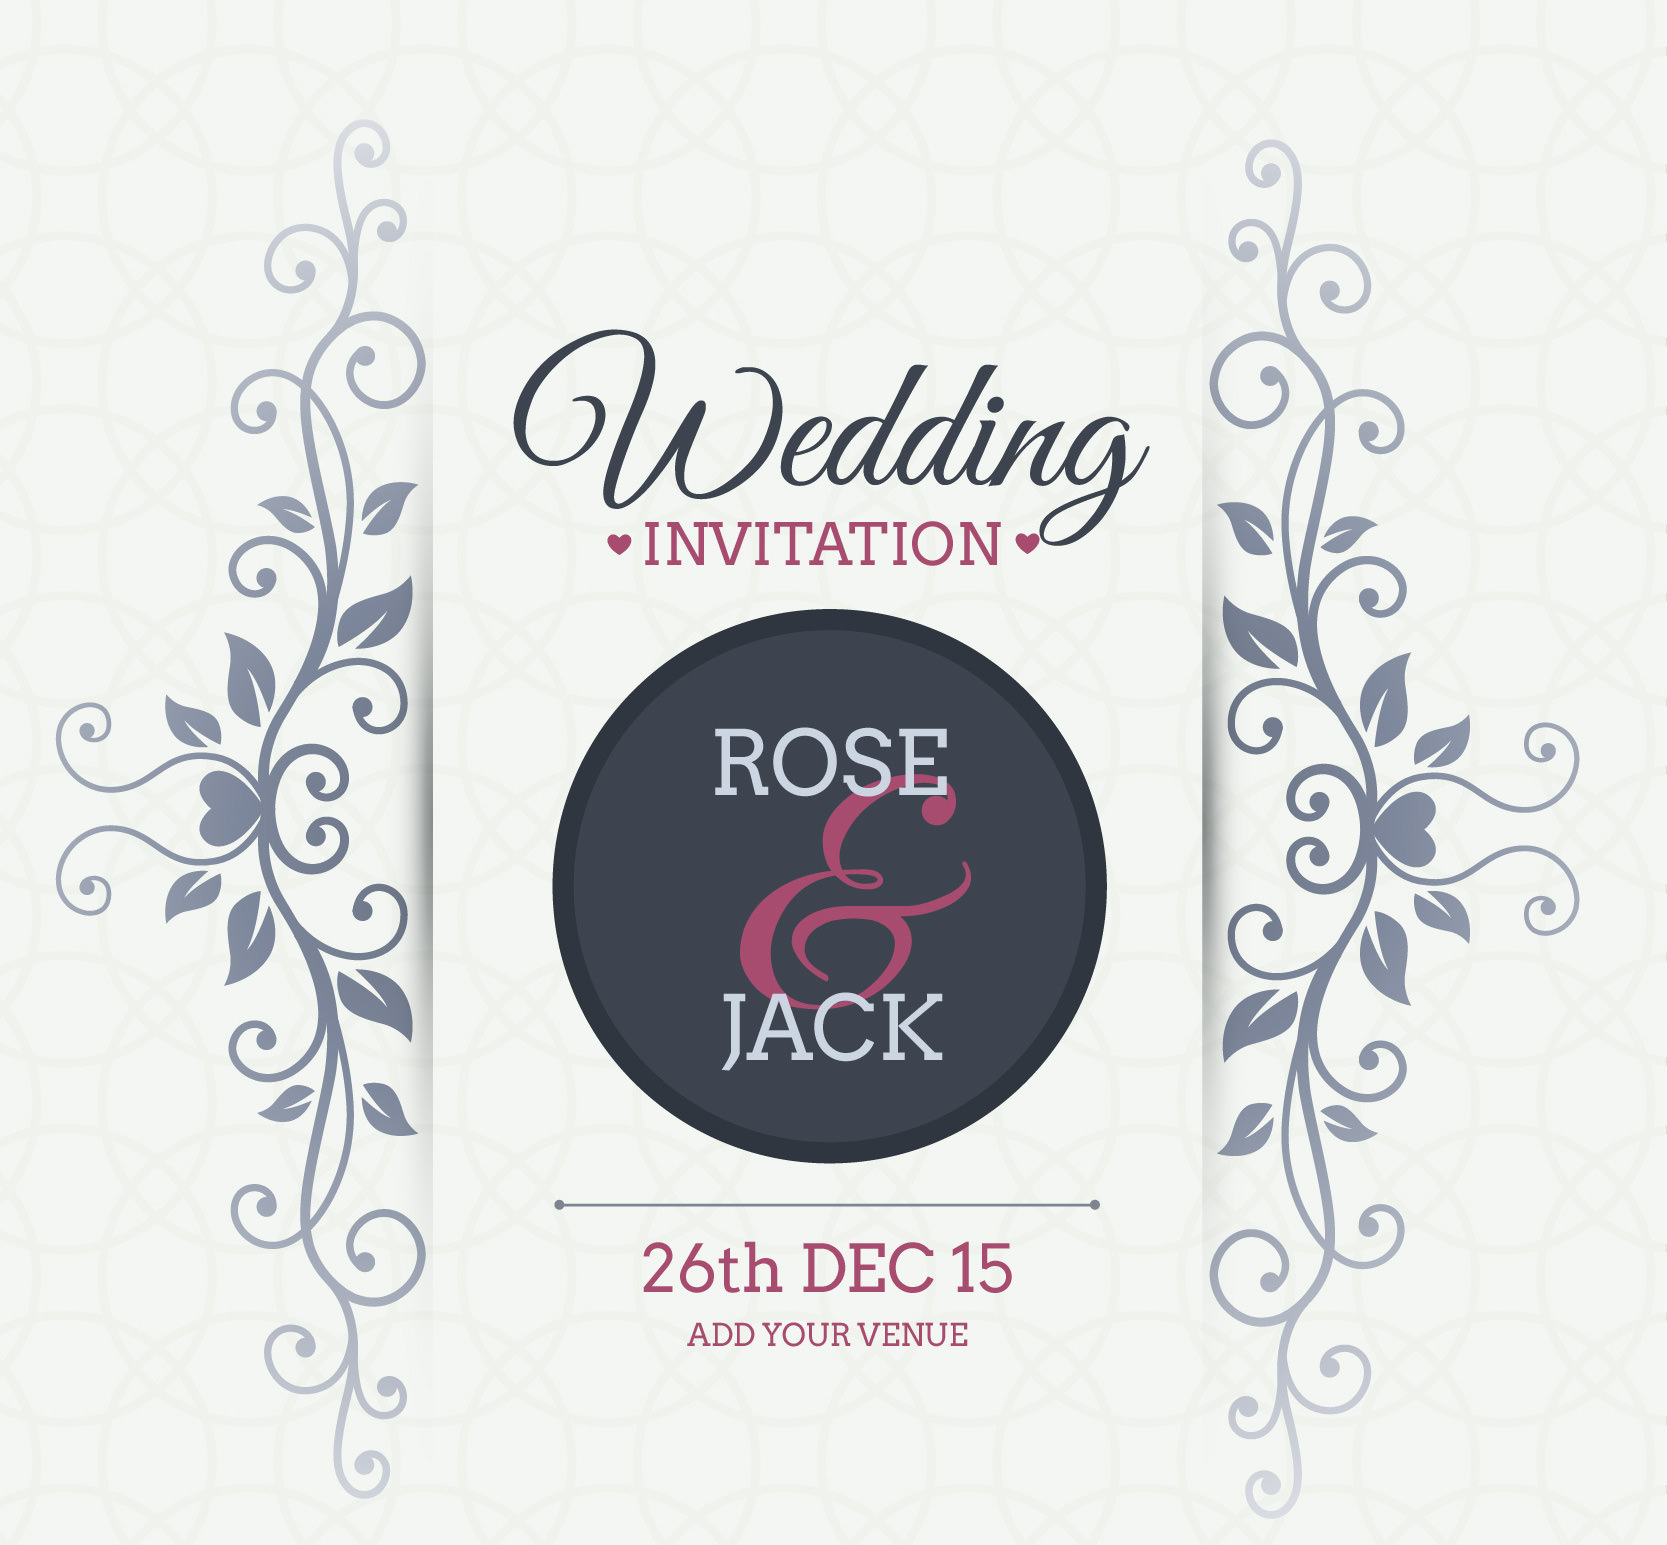 Free Wedding Vector Images At Getdrawings Com Free For